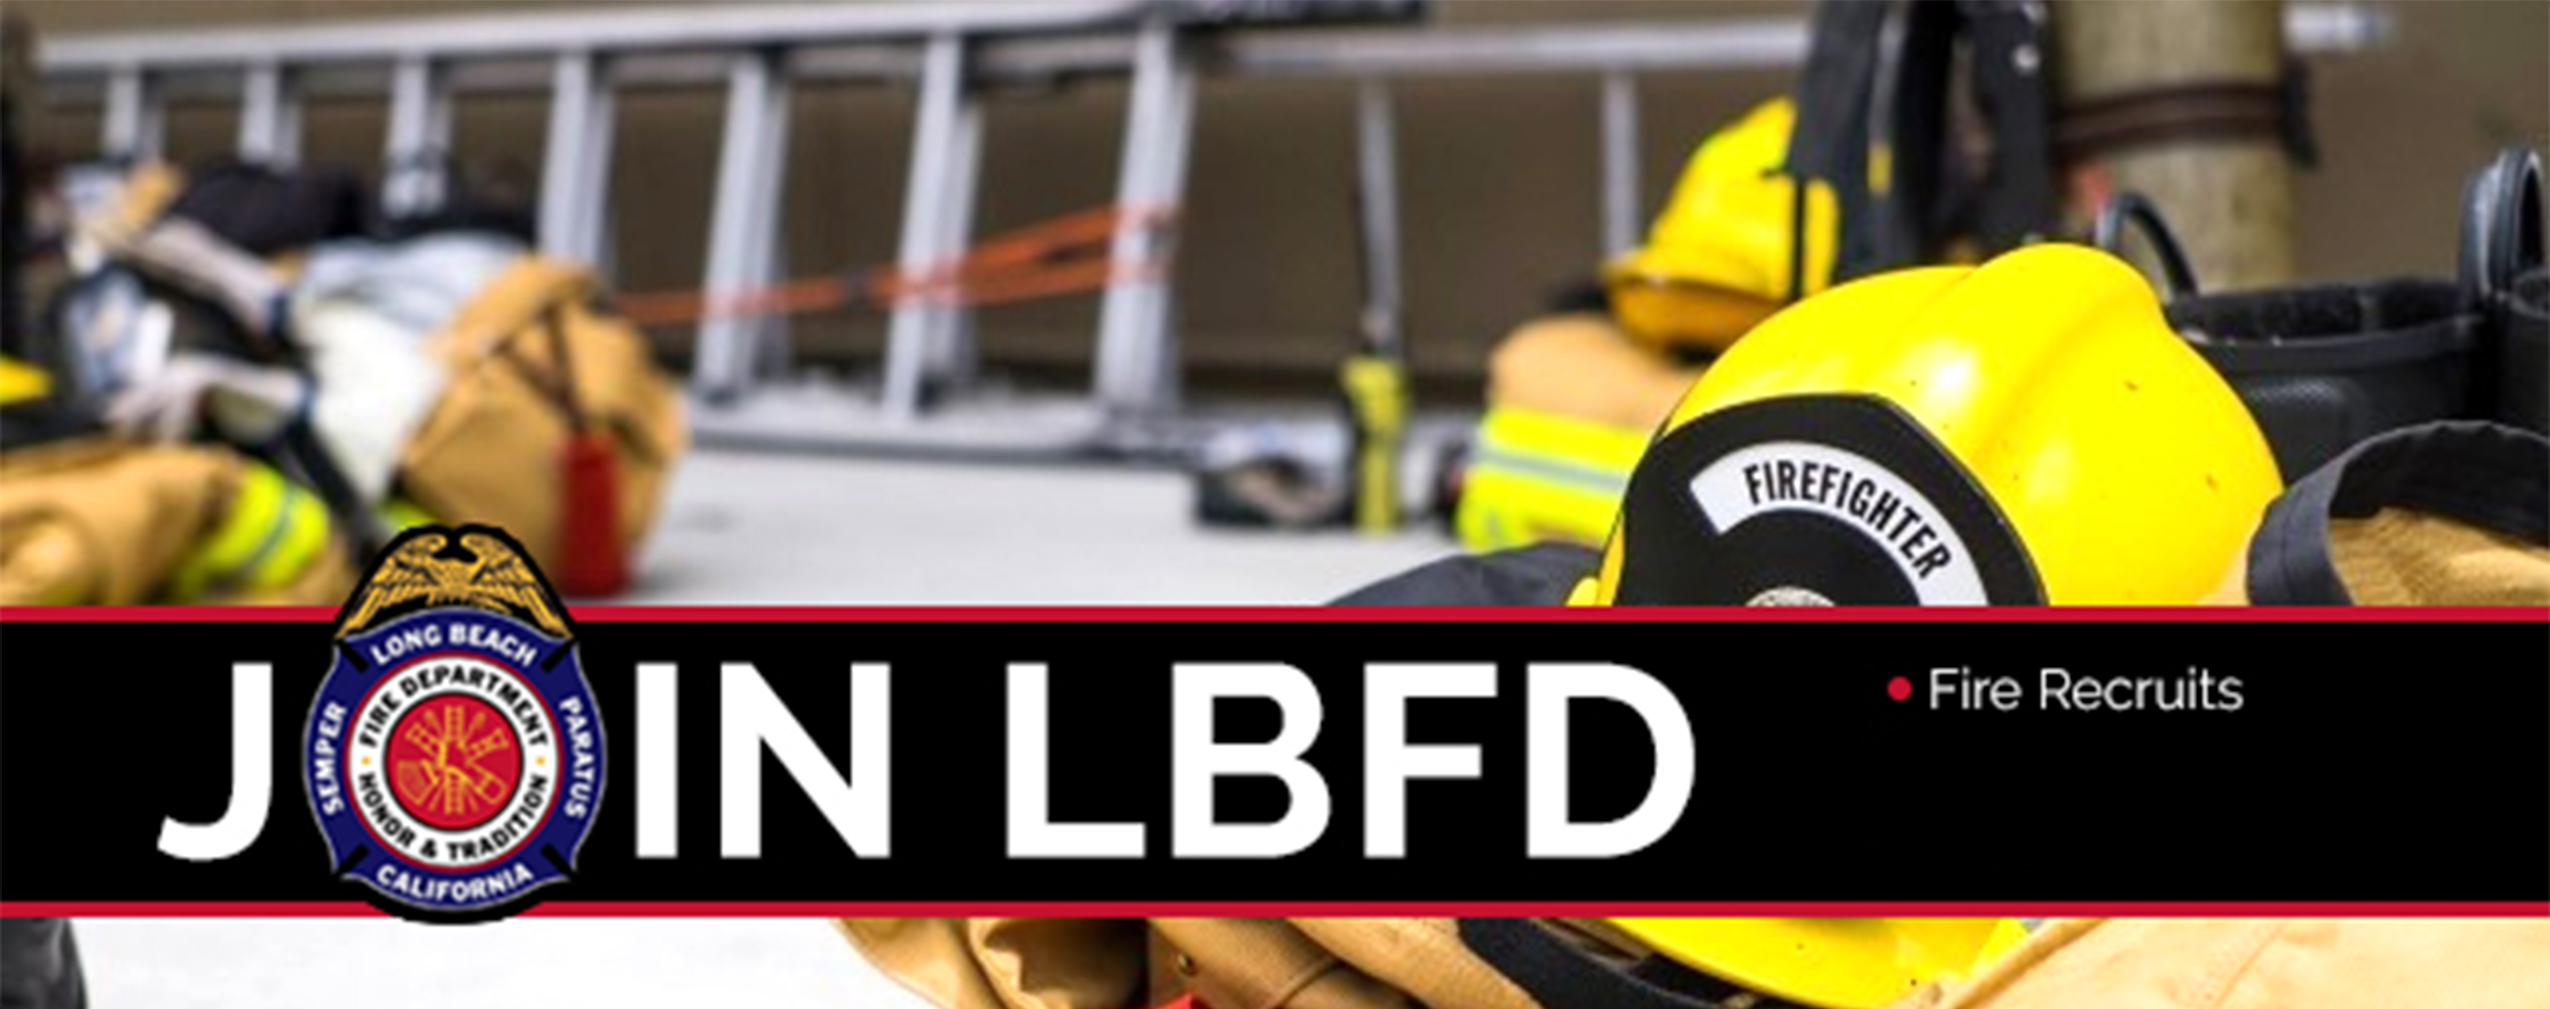 Join LBFD Header